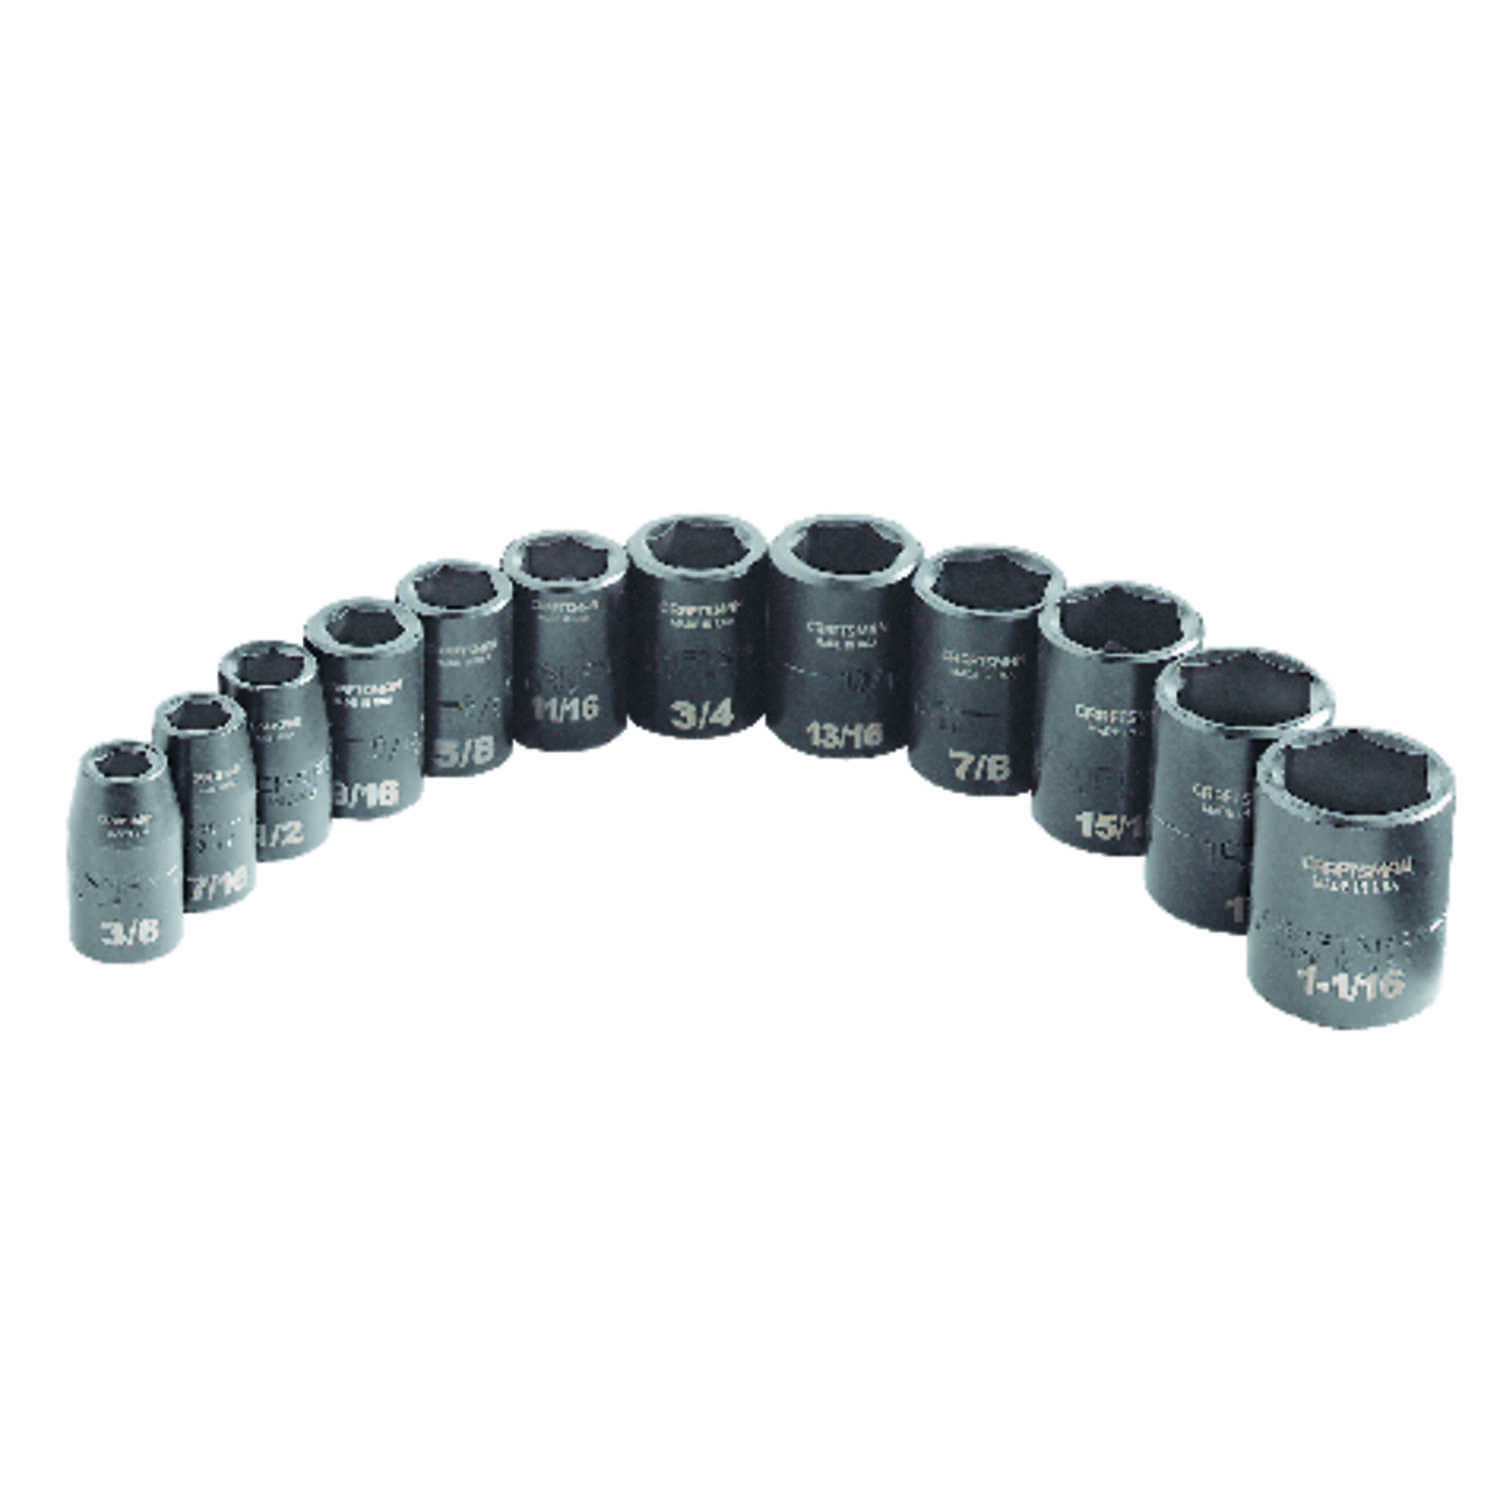 Craftsman  1-1/16 in.  x 1/2 in. drive  SAE  6 Point Standard  Impact Socket Set  12 pc.